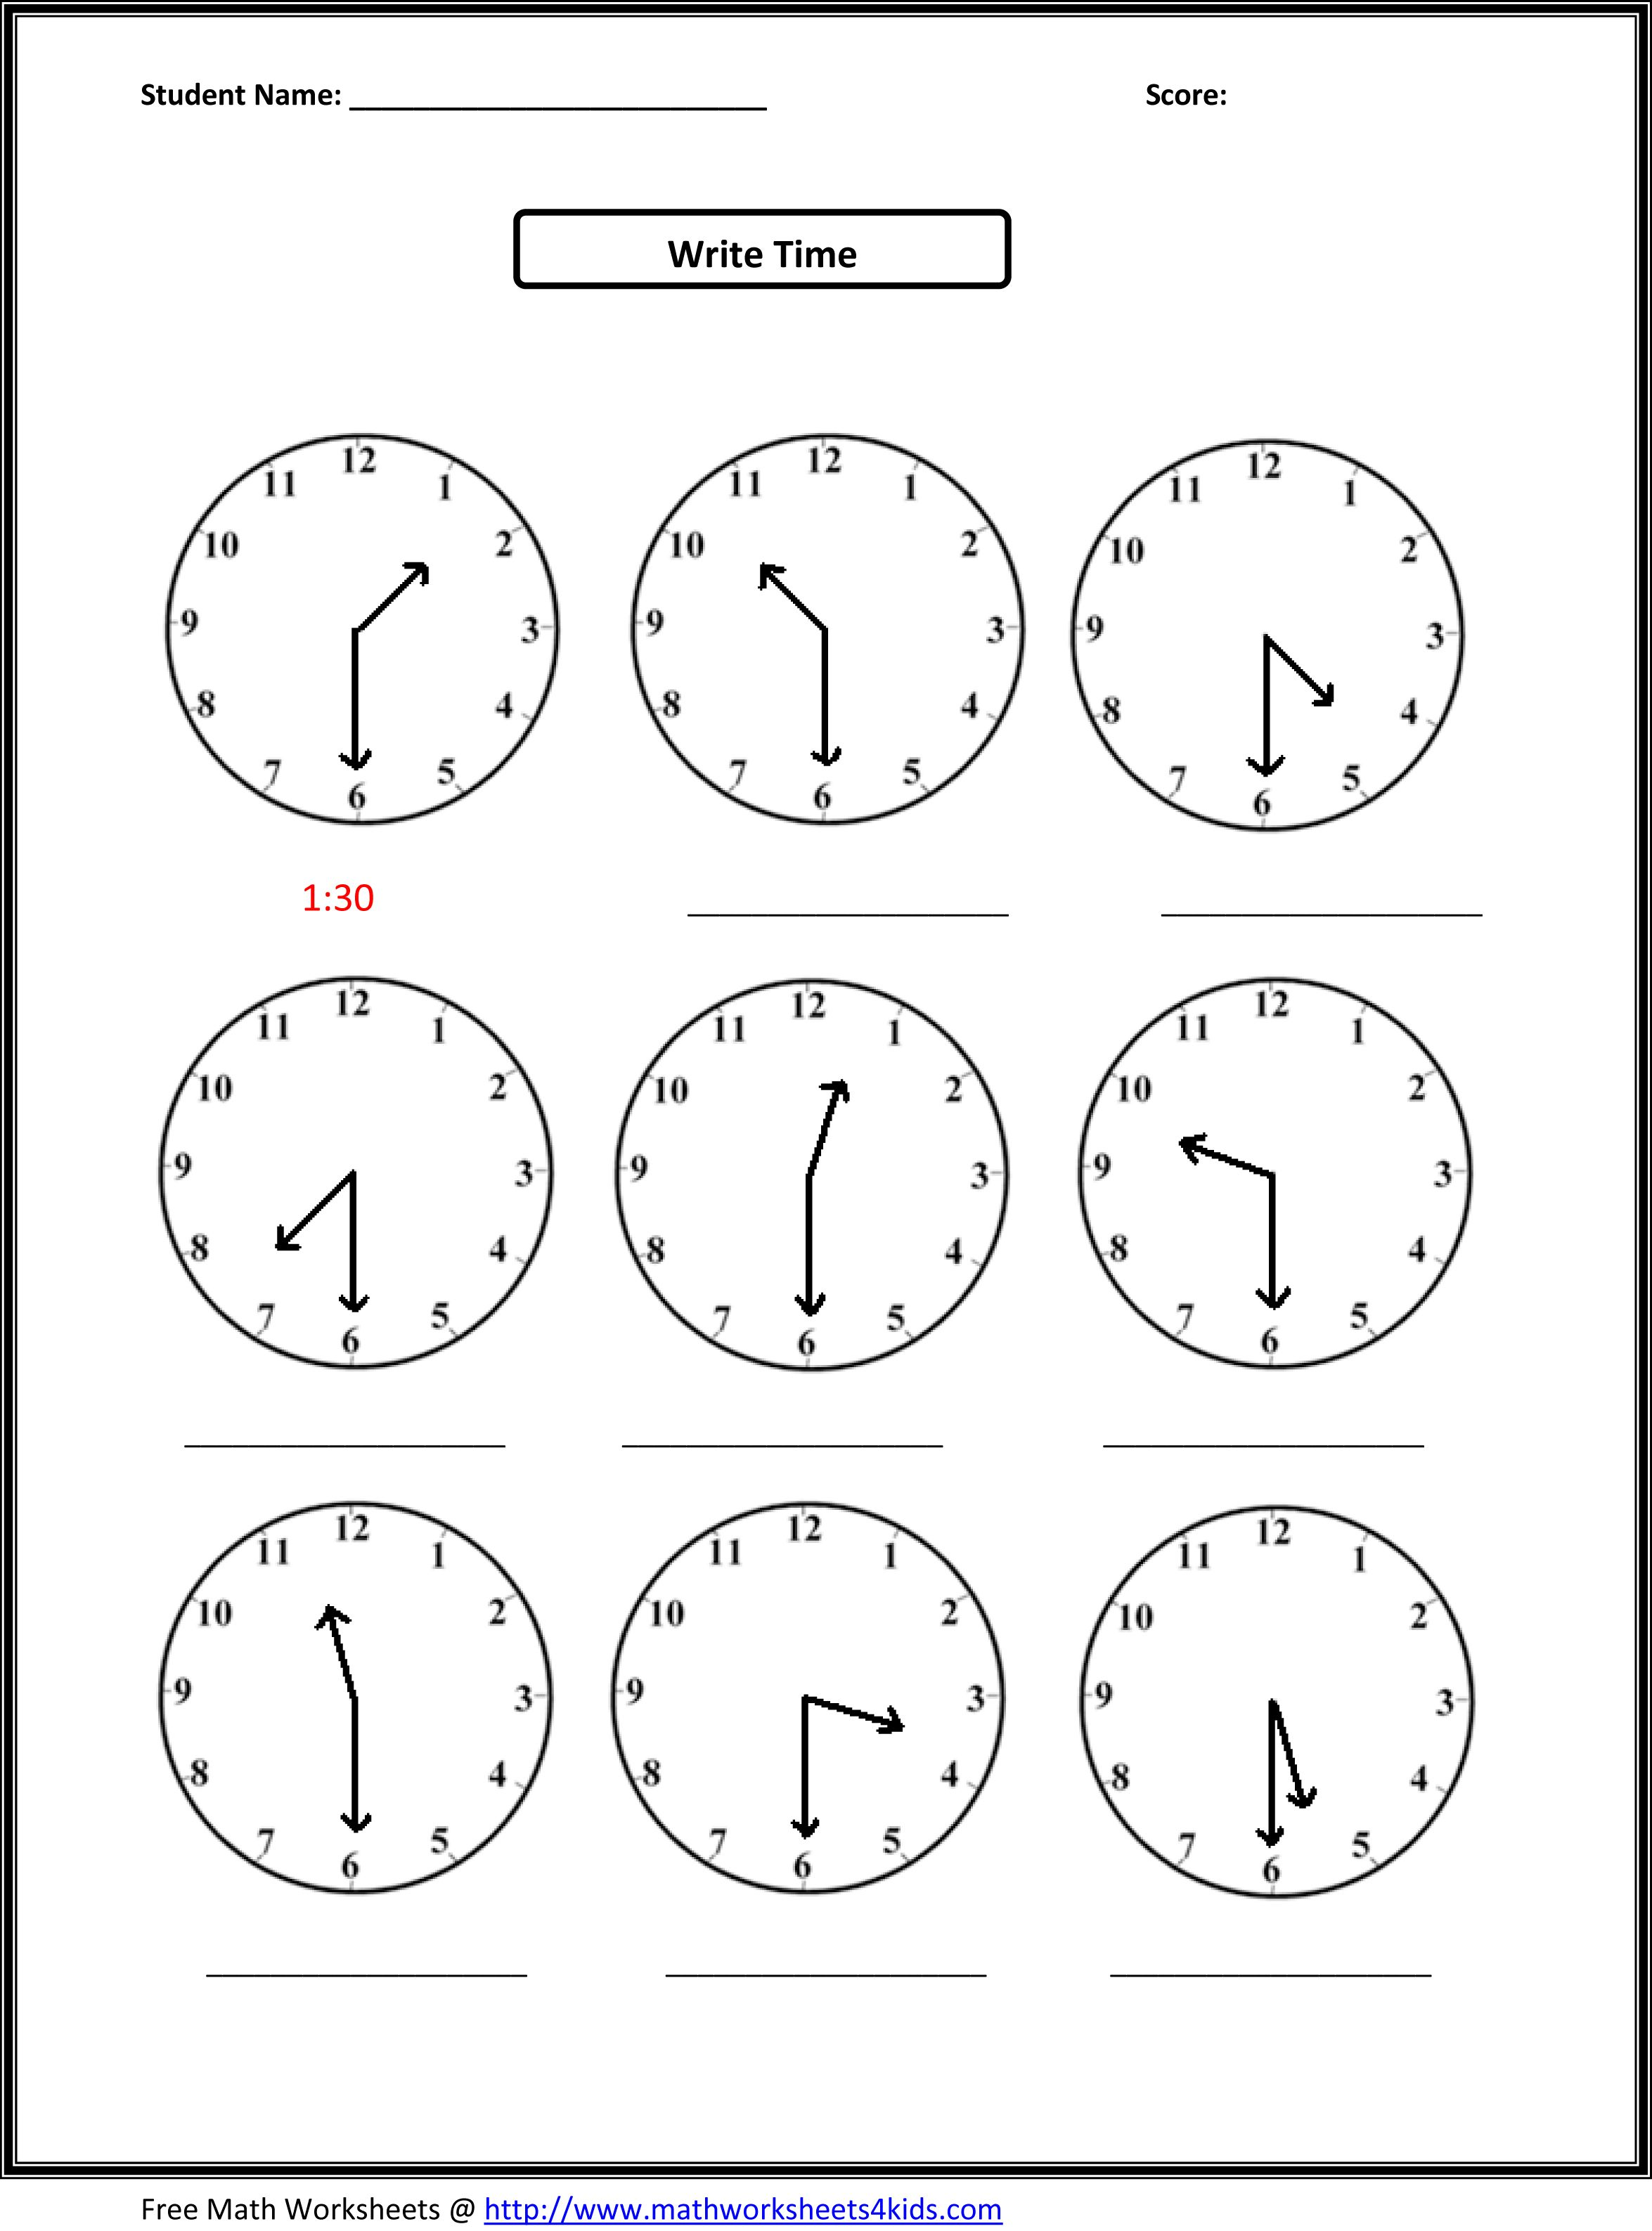 Weirdmailus  Stunning Worksheet On Time For Grade   Reocurent With Great Free Printable Telling Time Worksheets Nd Grade  Reocurent With Attractive Worksheets For Simple Present Tense Also Night And Day Worksheets In Addition School Safety Worksheets And Equations Worksheet Generator As Well As Noun Worksheets For Th Grade Additionally Spelling Rule Worksheets From Reocurentcom With Weirdmailus  Great Worksheet On Time For Grade   Reocurent With Attractive Free Printable Telling Time Worksheets Nd Grade  Reocurent And Stunning Worksheets For Simple Present Tense Also Night And Day Worksheets In Addition School Safety Worksheets From Reocurentcom